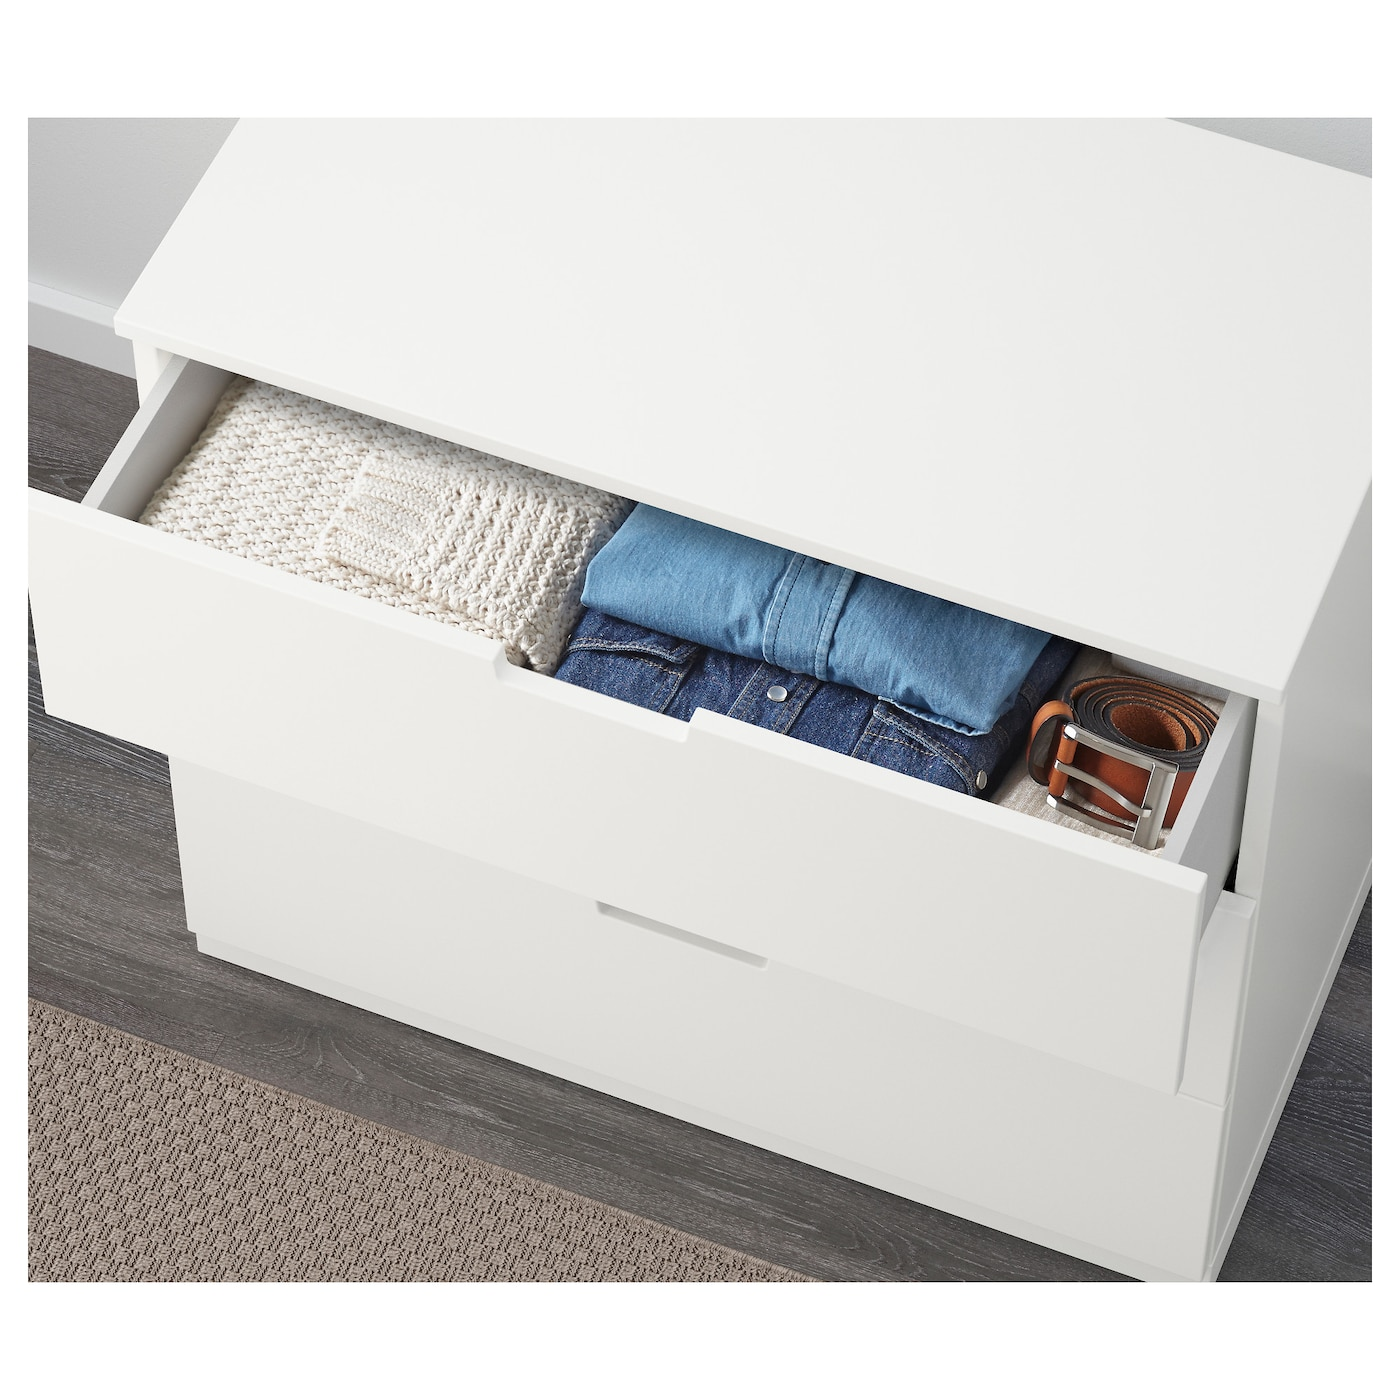 IKEA NORDLI chest of 3 drawers